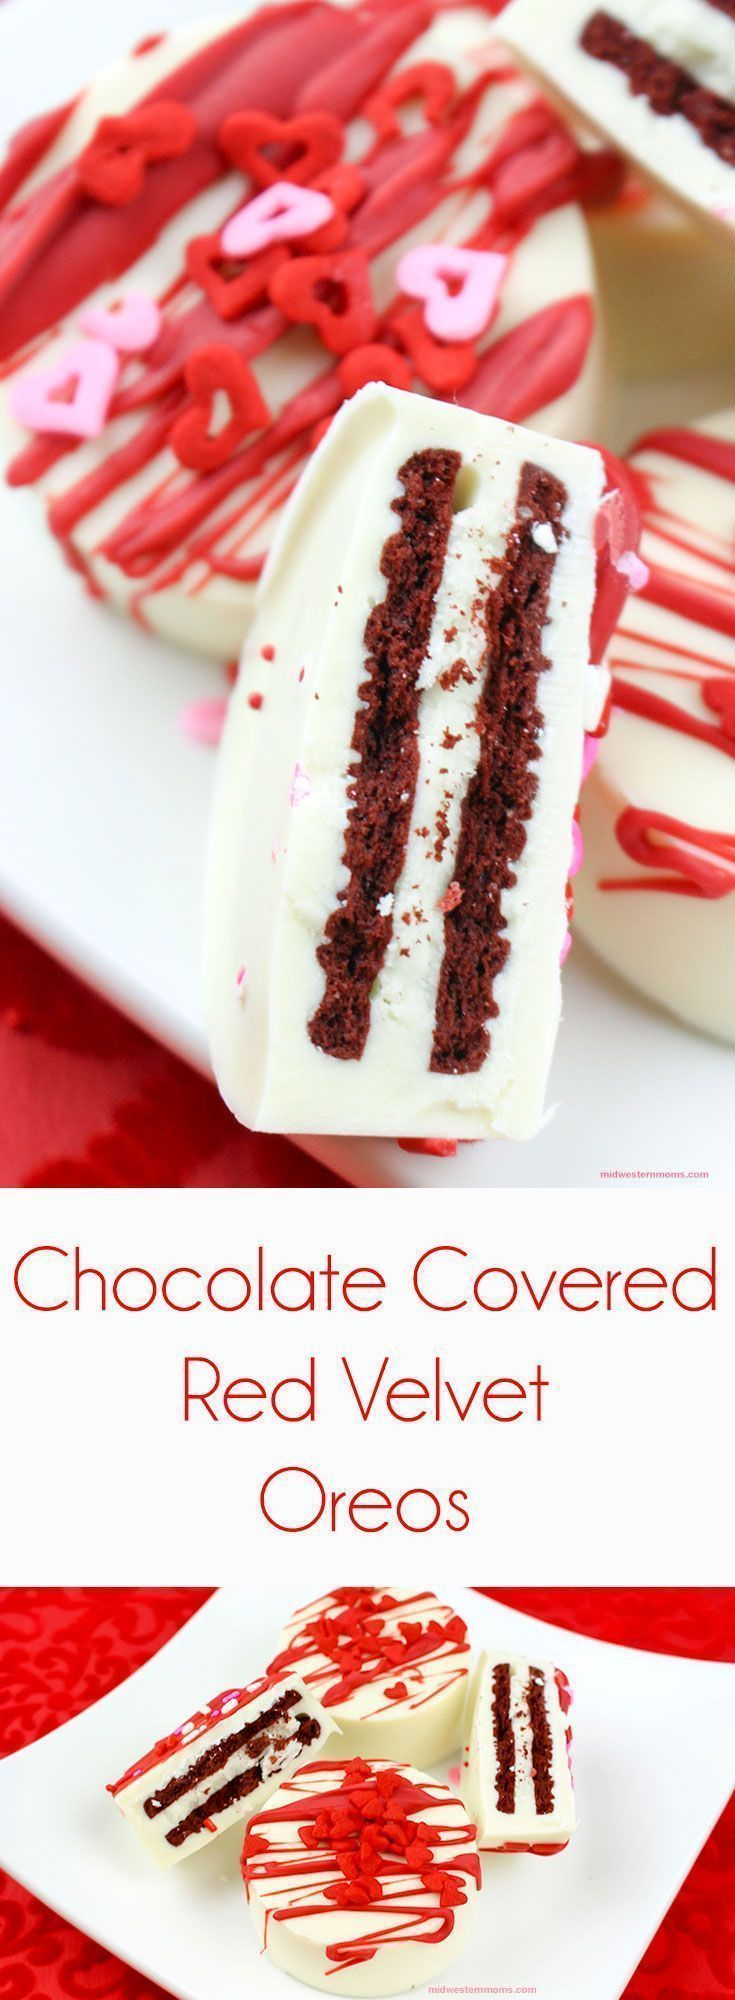 Simple and delicious chocolate covered red velvet Oreos